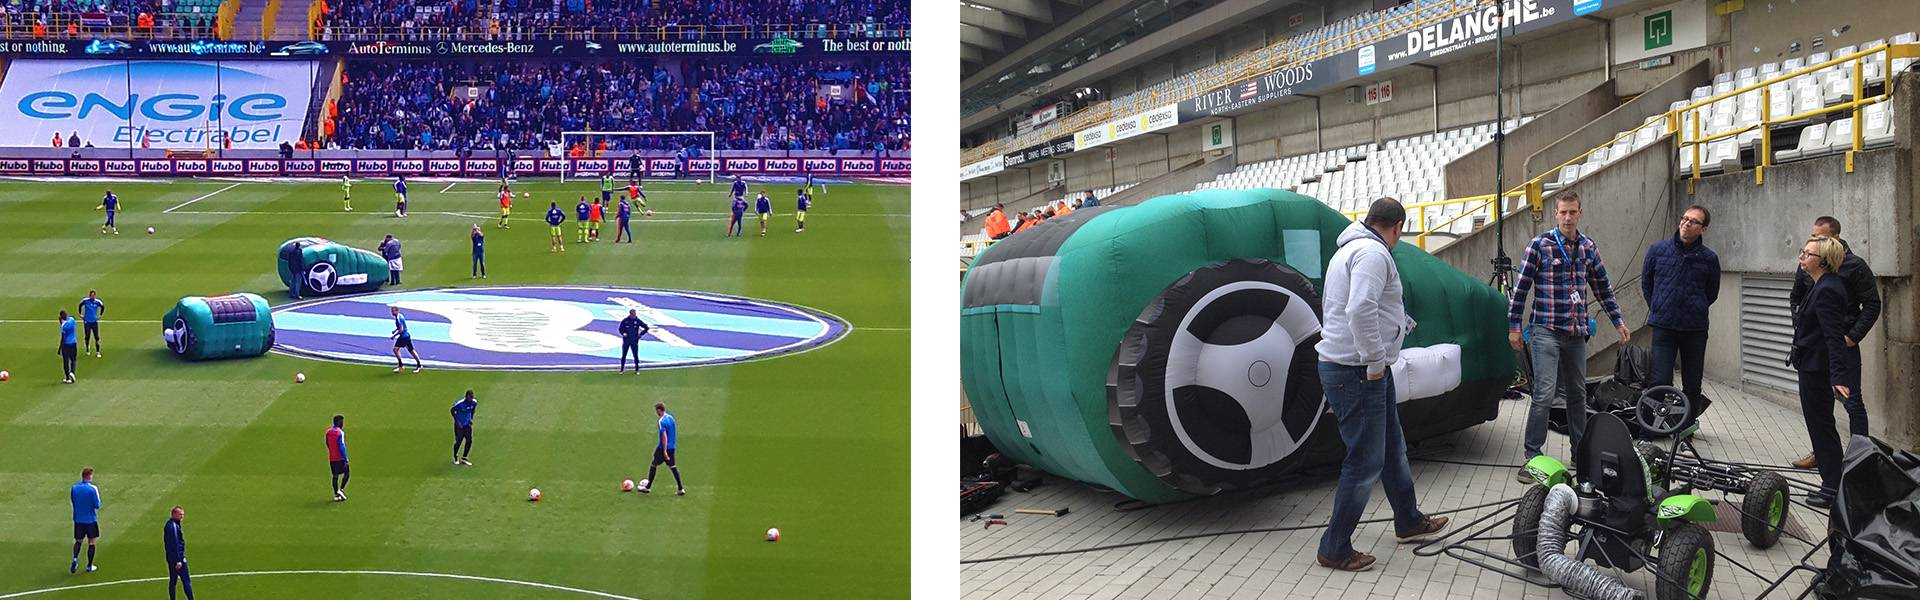 Large inflatable promotional material | X-Treme Creations Inflatable lawnmowers at the stage of RSC Anderlecht Bosch Da Vinci Events X-Treme Creations